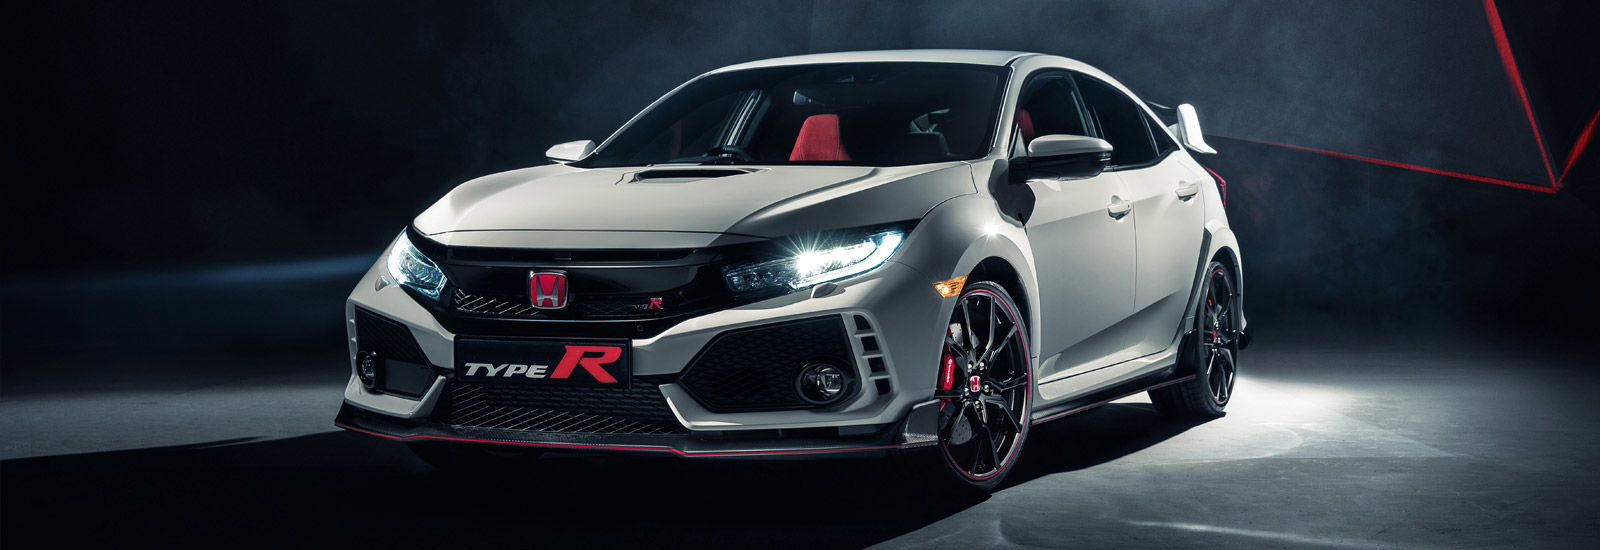 2017 honda civic type r price specs release date carwow. Black Bedroom Furniture Sets. Home Design Ideas